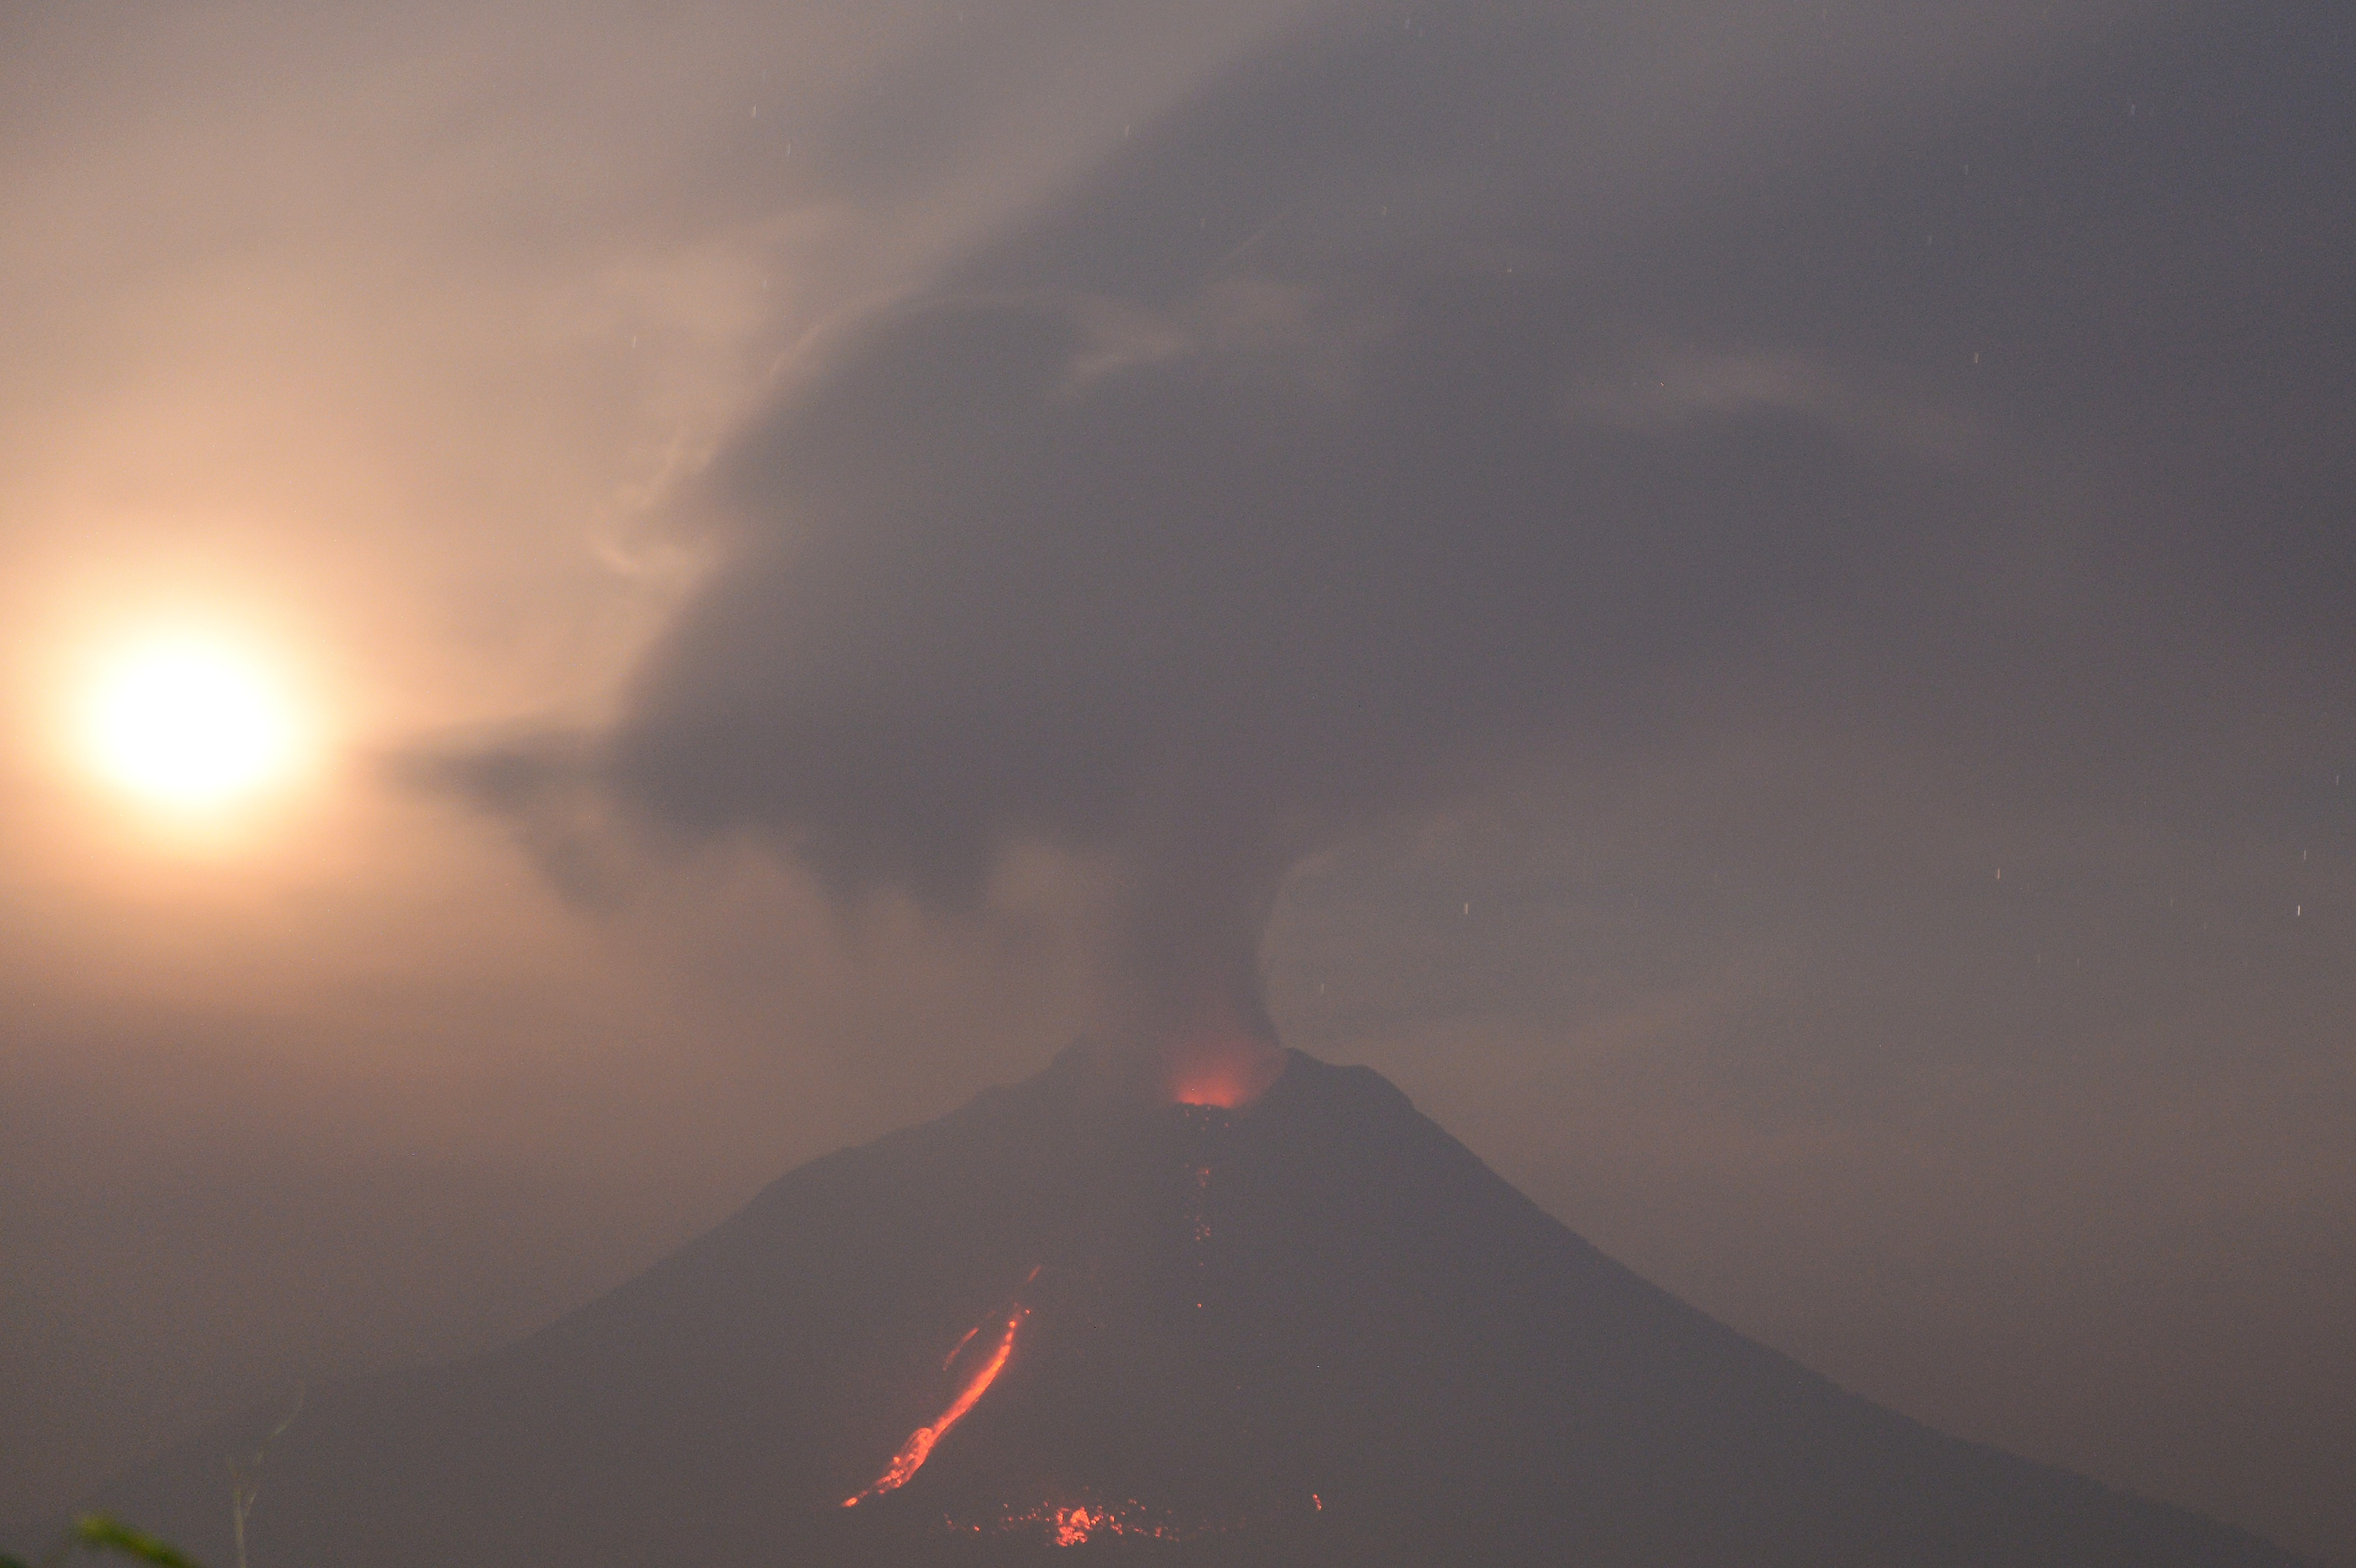 The sun shines dimly through ash after a volcanic eruption.